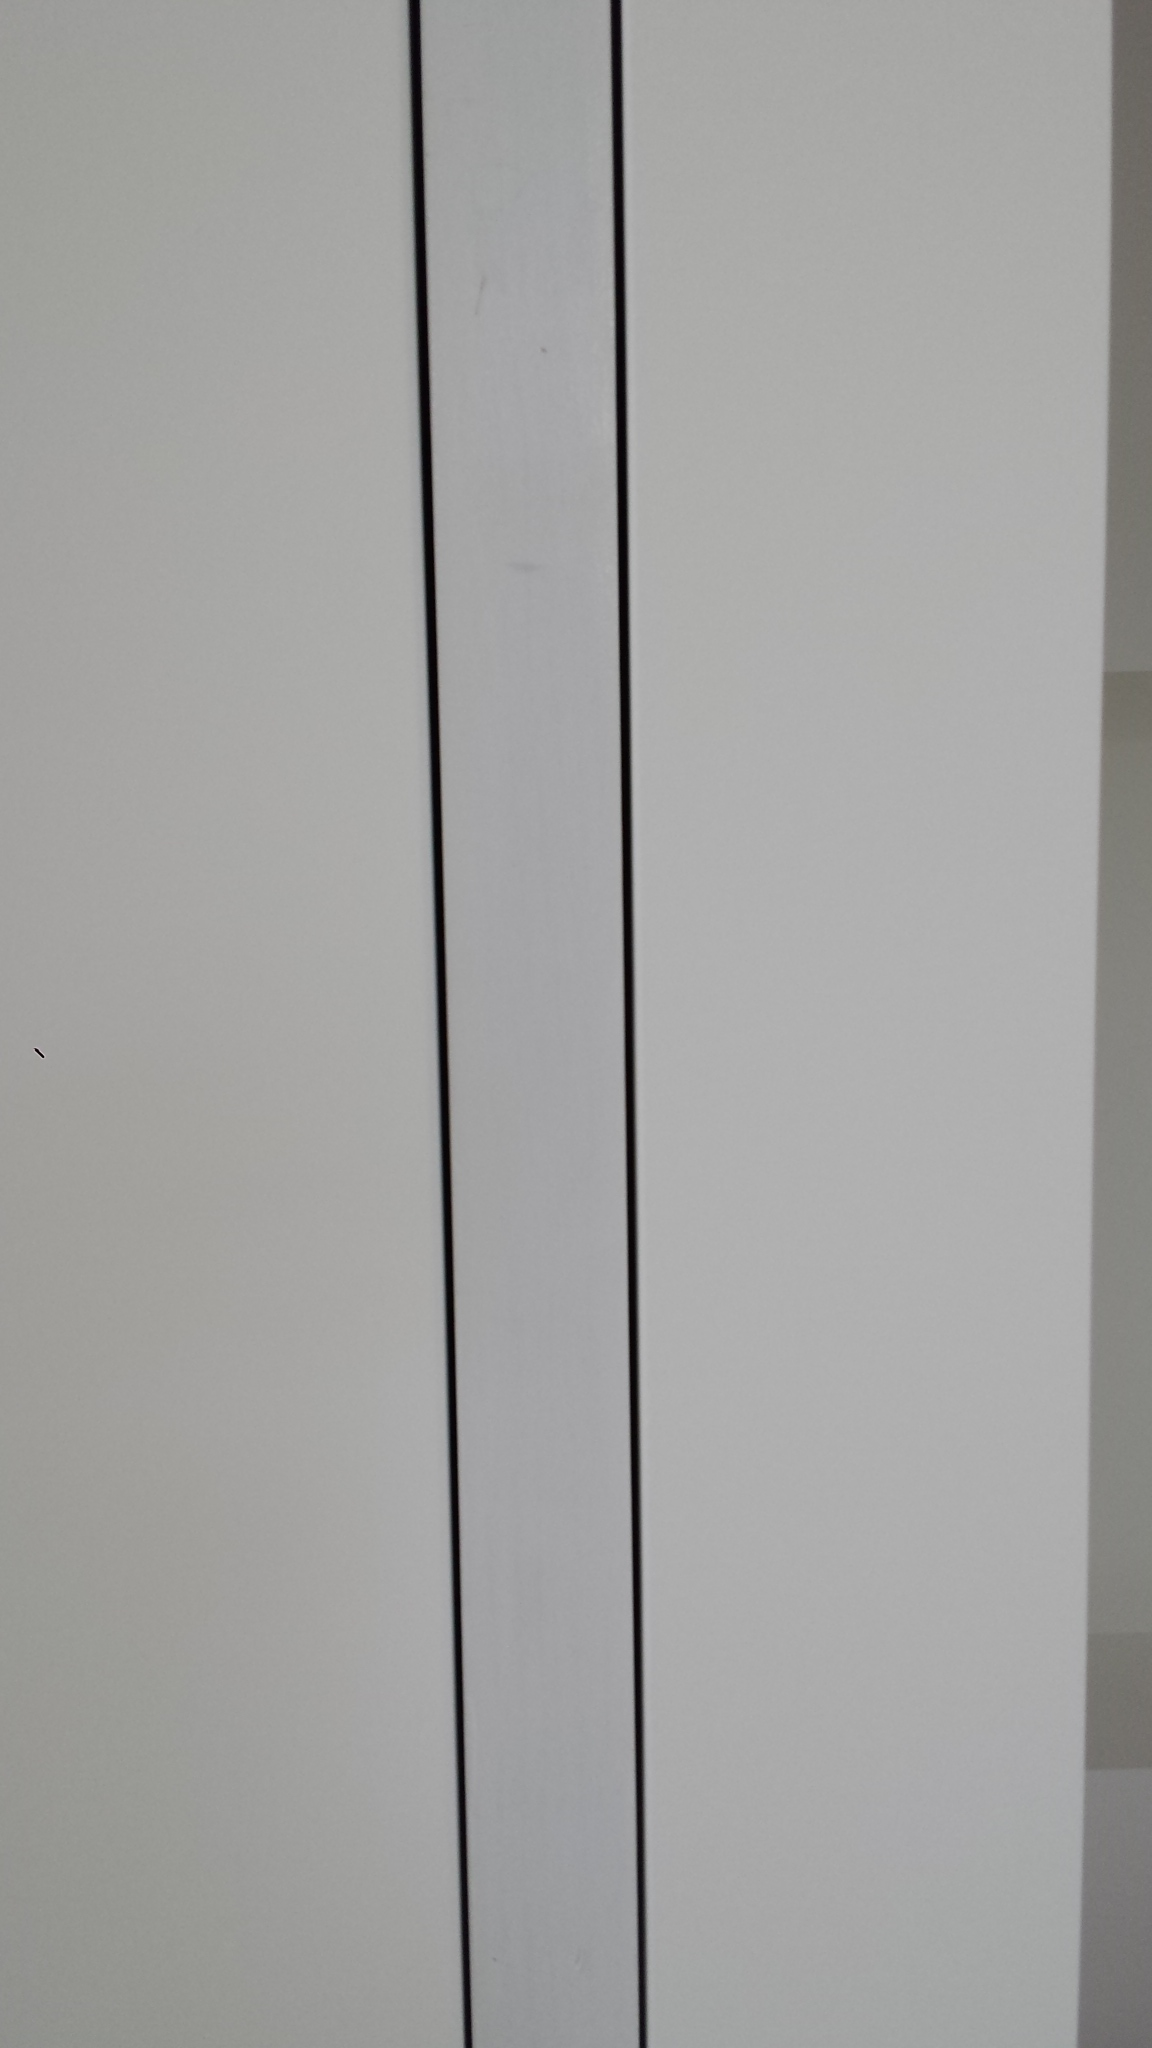 Note the nice even alignment of the edges of the drywall. Seeing the finished product makes it seem all too easy. But custom pocket doors definitely take craftsmen that know what they are doing. It done right, they are beautiful and very functional.